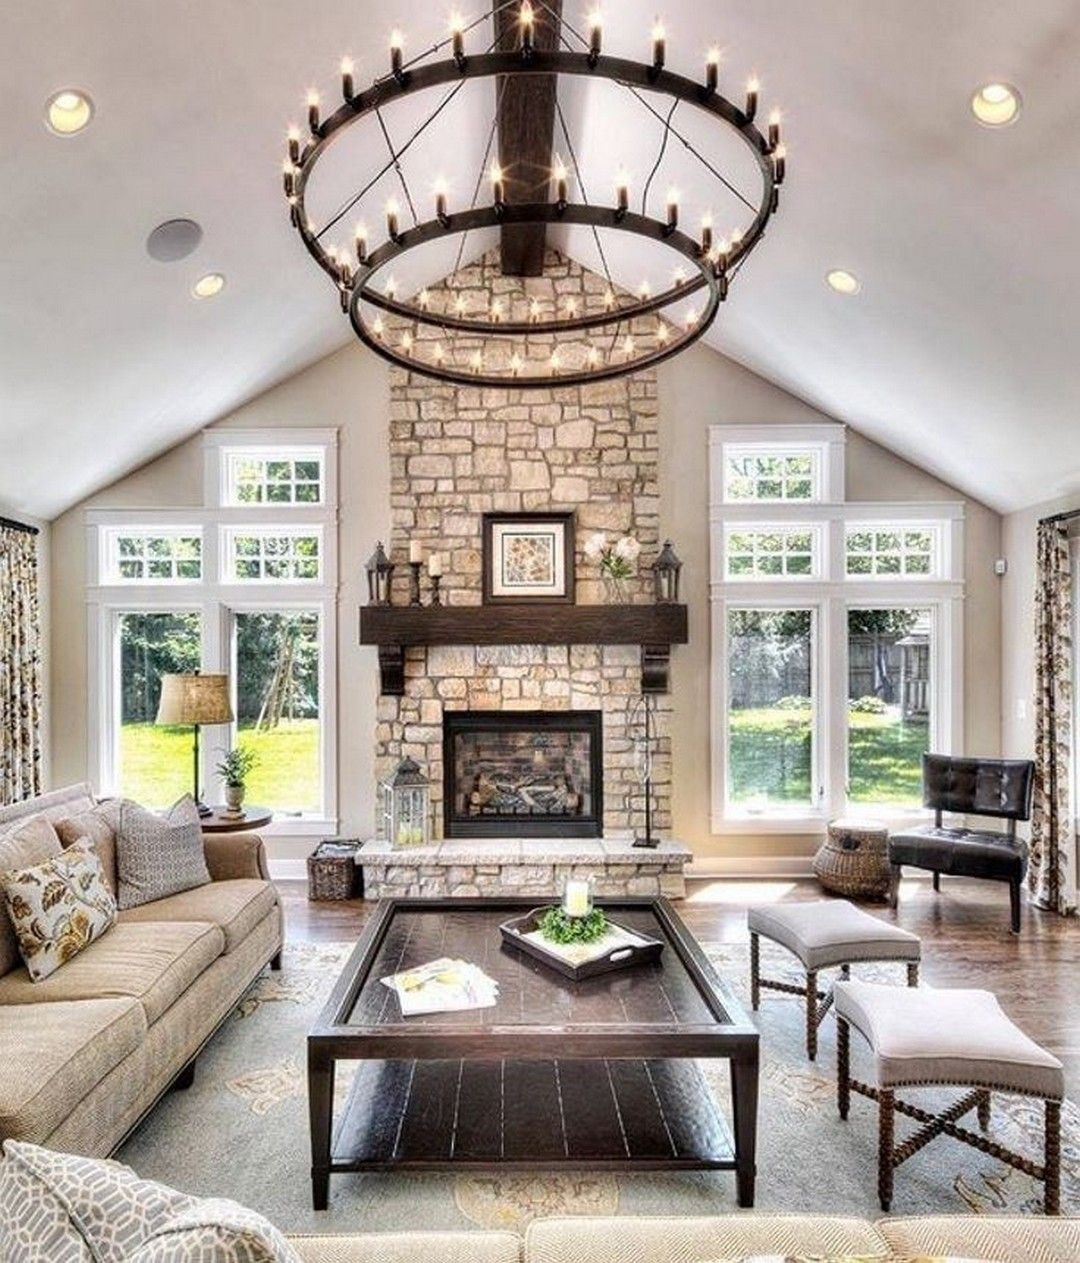 Great Home Design Ideas: Farmhouse Living Room With A Stone Fireplace Ideas Http